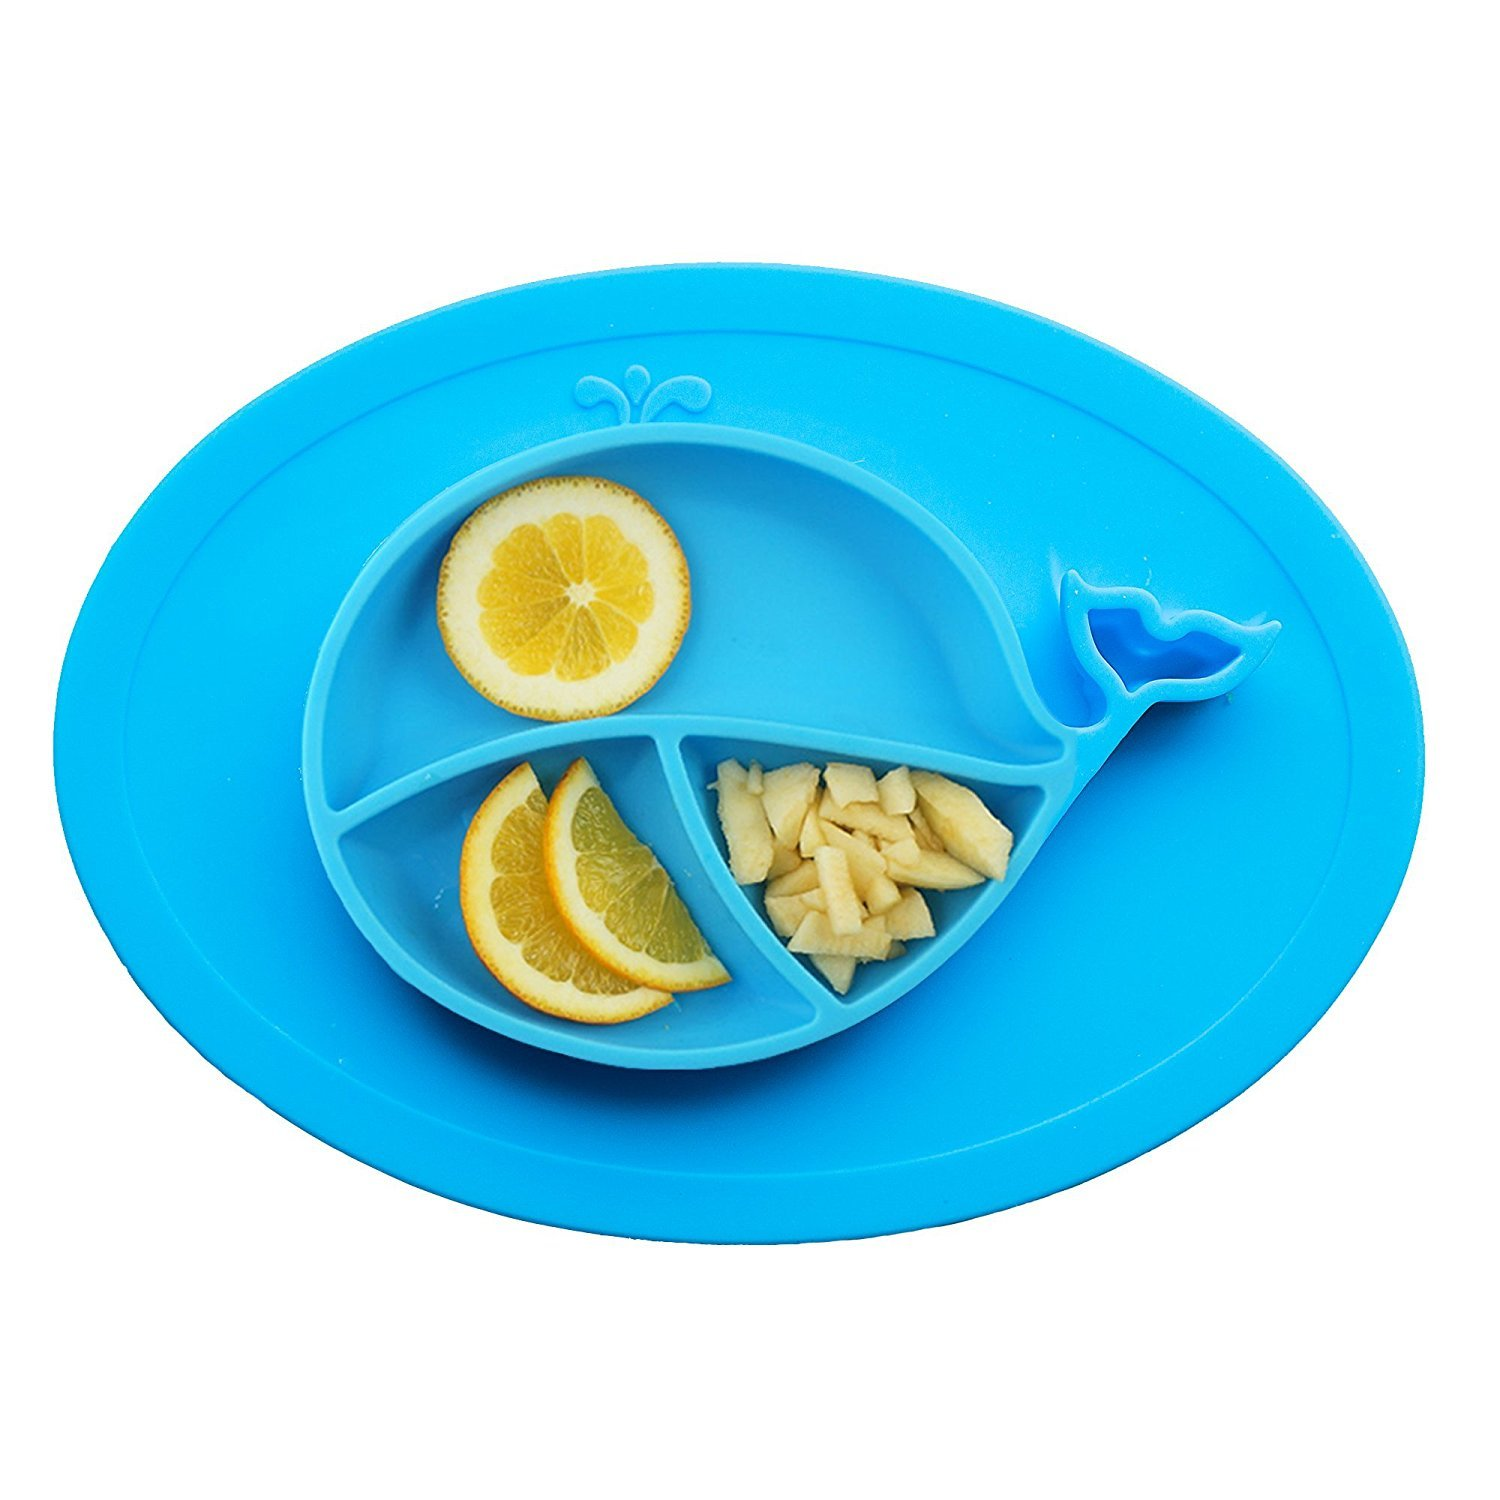 Silicon Suction Placemat and Plate for Kids, Toddlers, Children, and Babies. Perfect for feeding in a highchair, BPA Free, Built in Bowl (Blue)